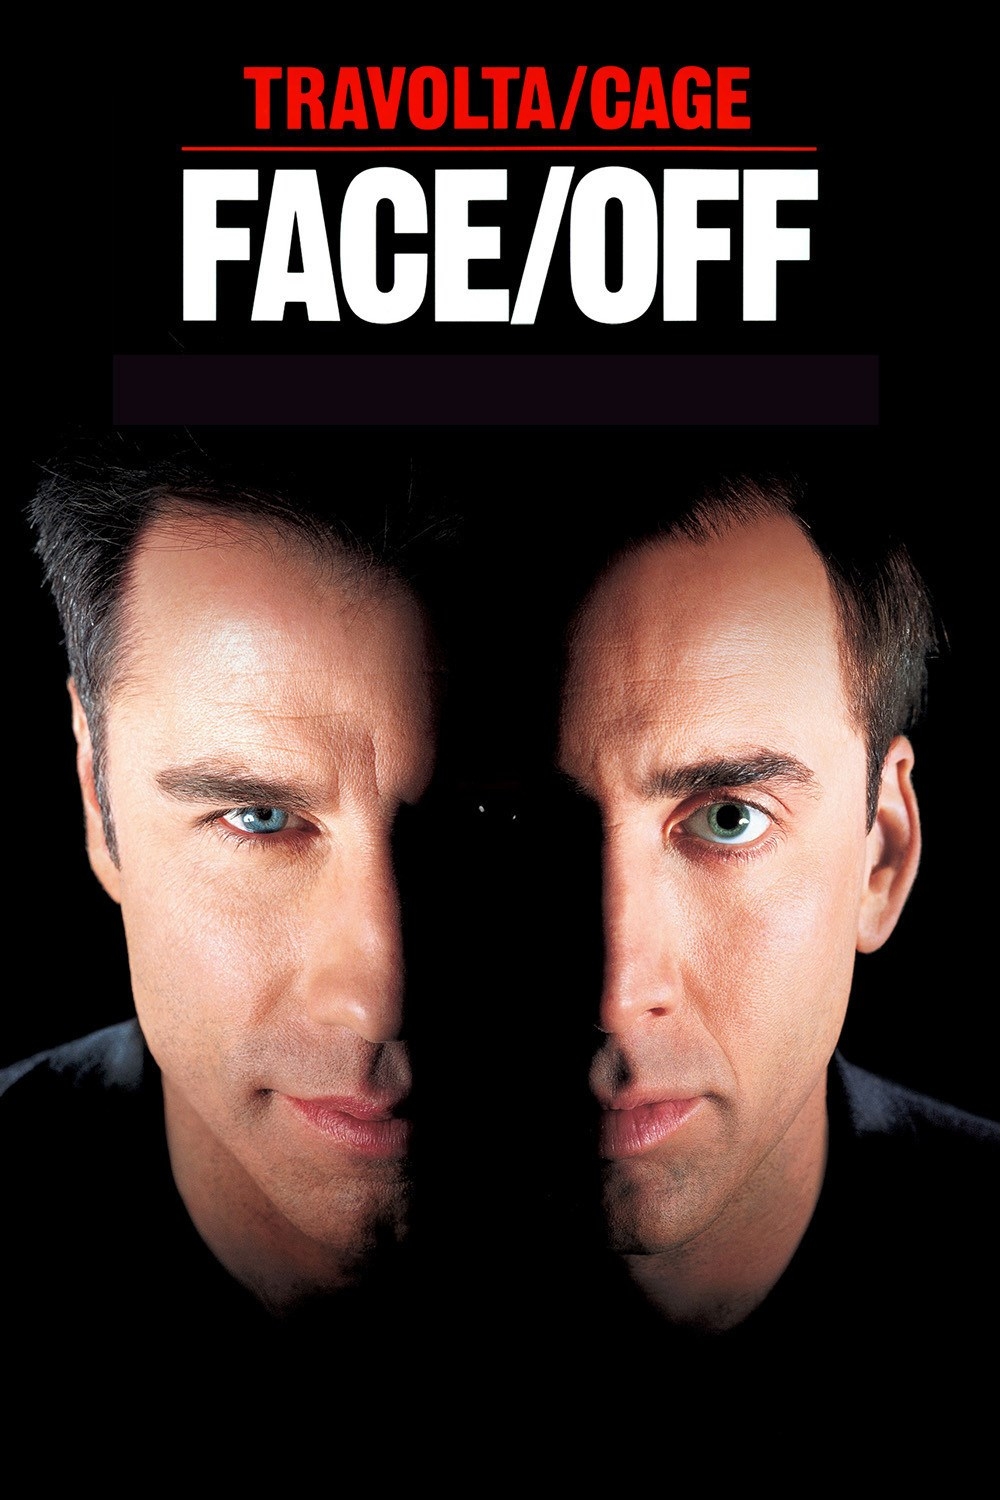 This film student's passionate review of Face/Off is how ...